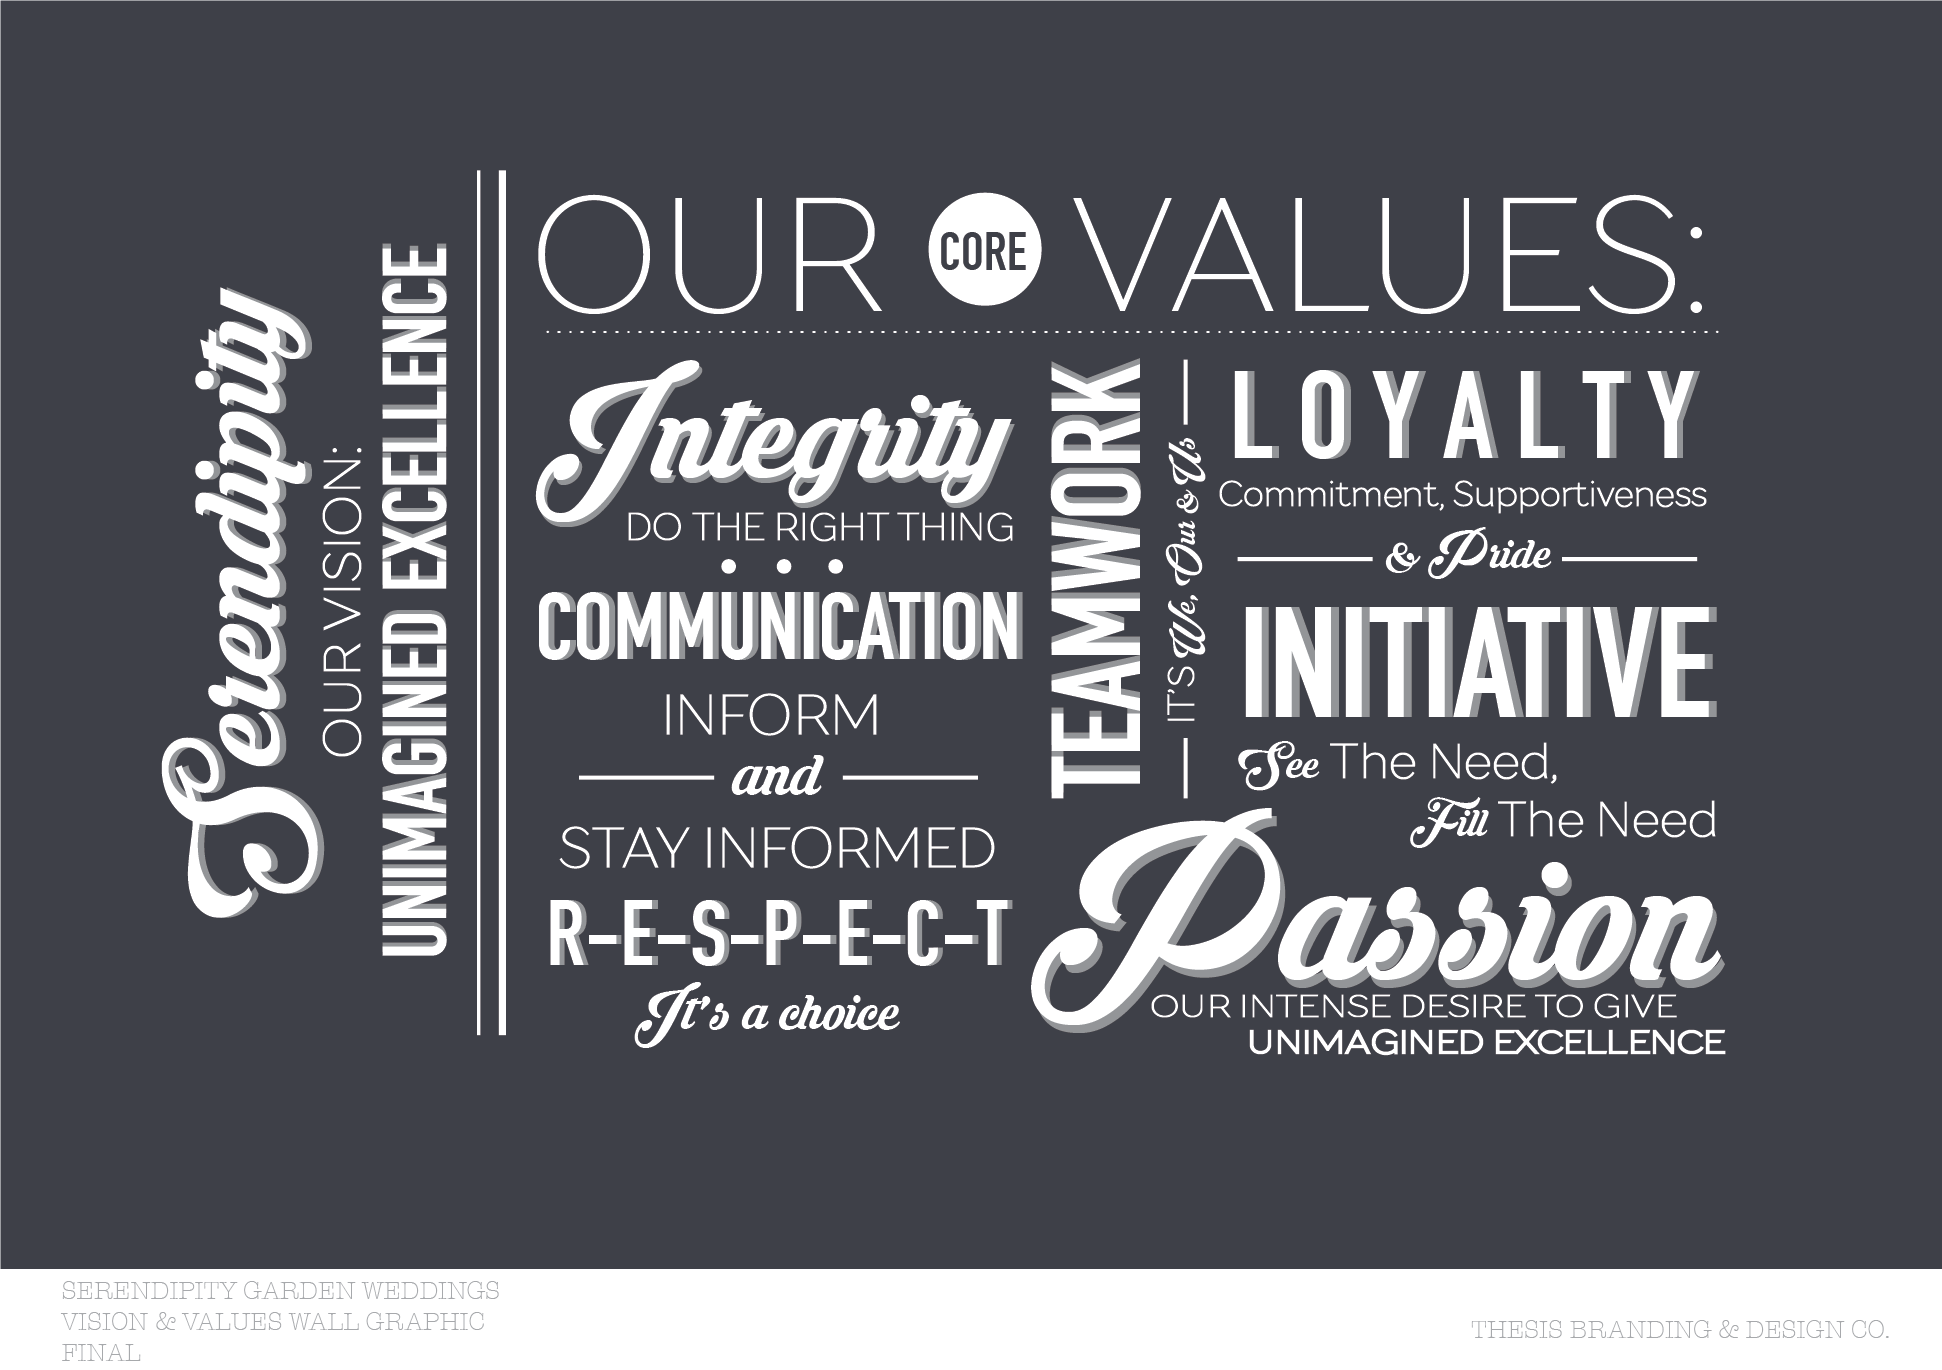 SERENDIPITY_VISION AND VALUES_WALL GRAPHIC_REV 1-01.png